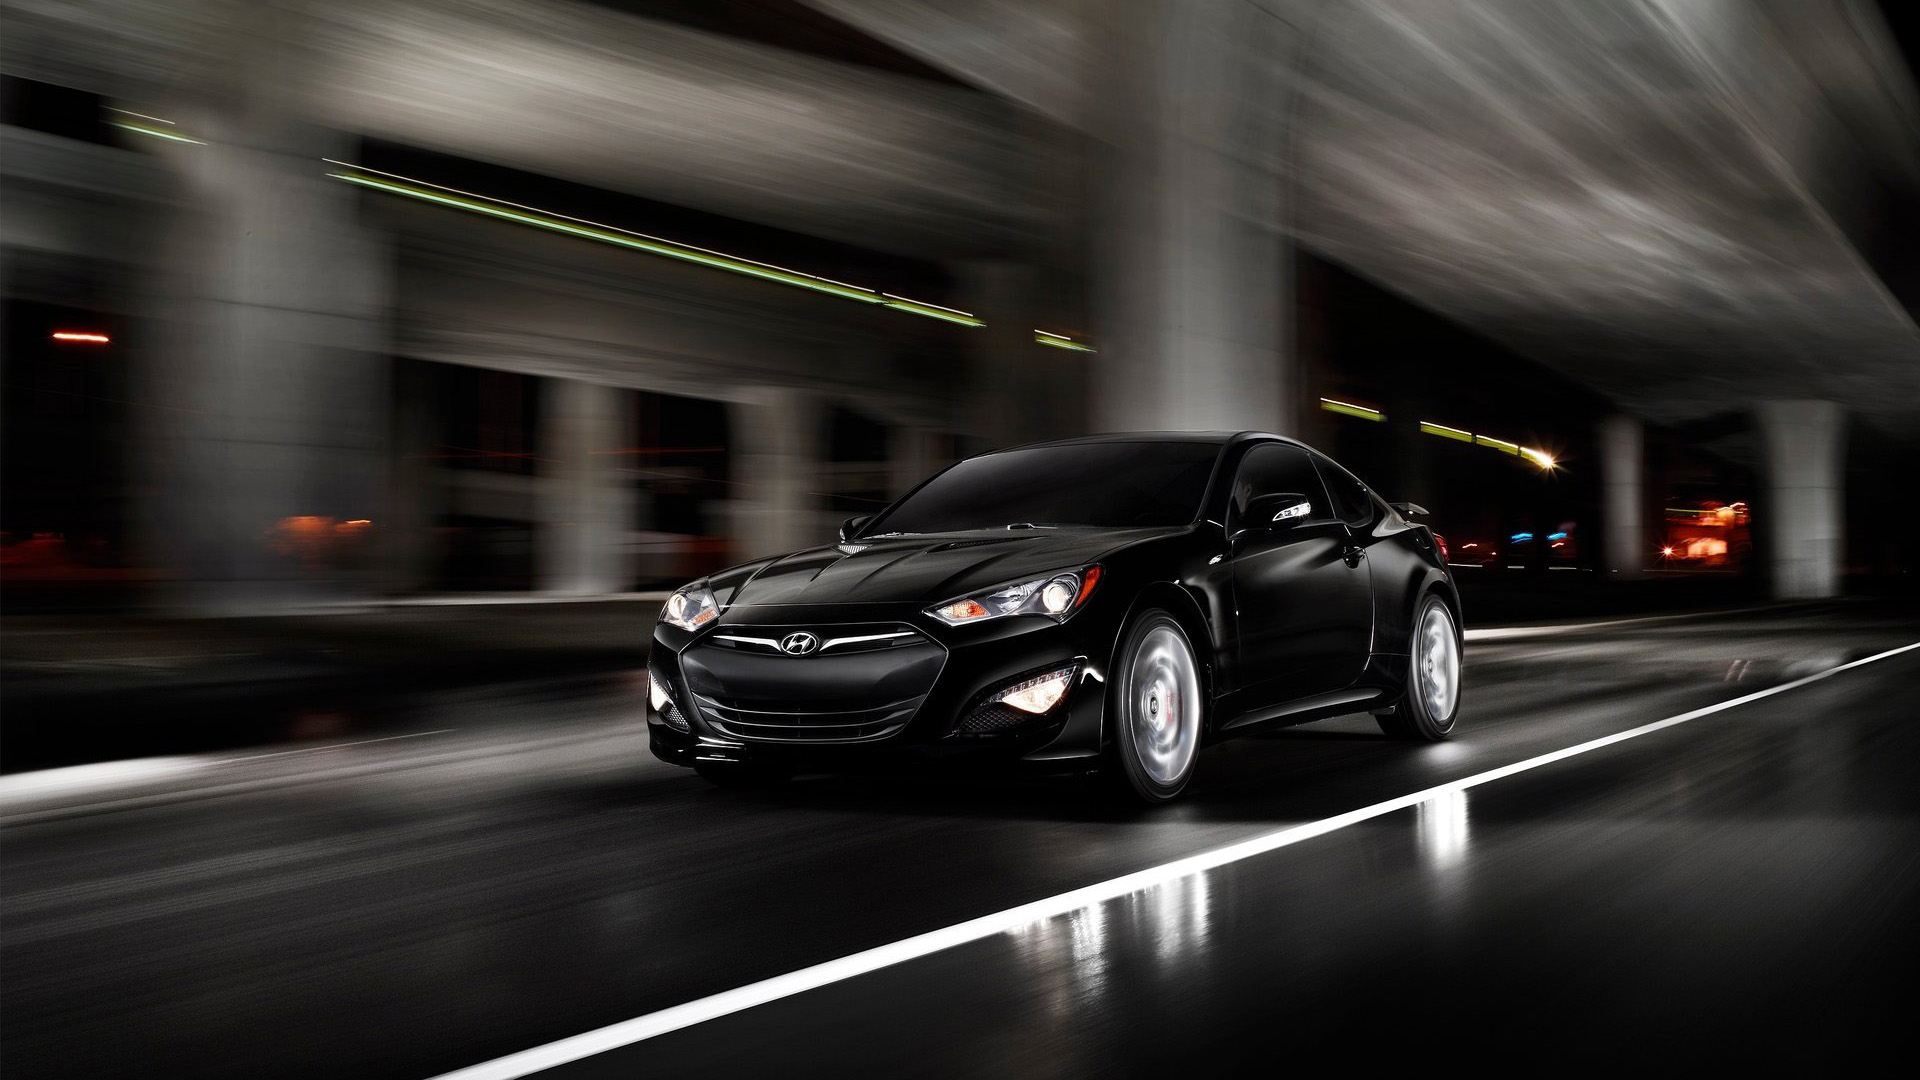 2013 Hyundai Genesis Coupe Wallpapers HD Images   WSupercars 1920x1080